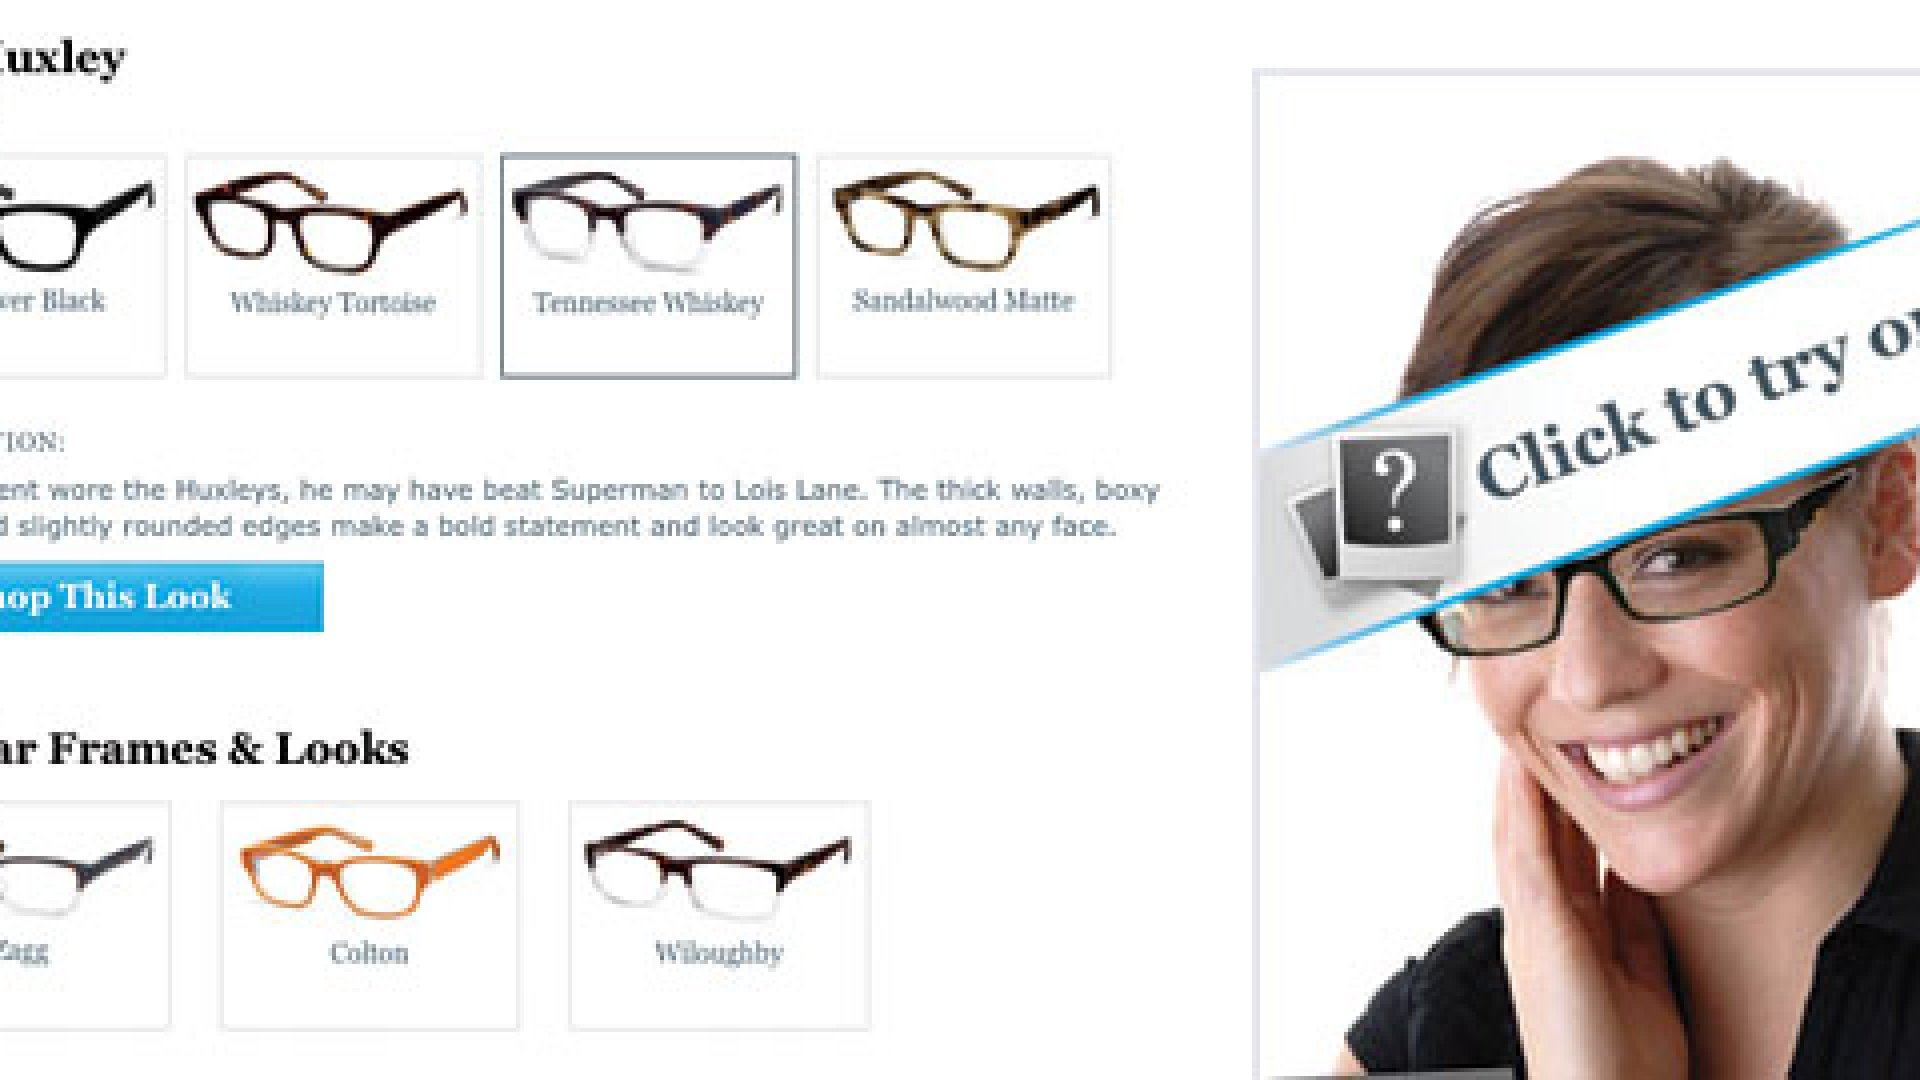 Warby Parkers online Virtual Booth; customers upload photos and can see how they look on their face.